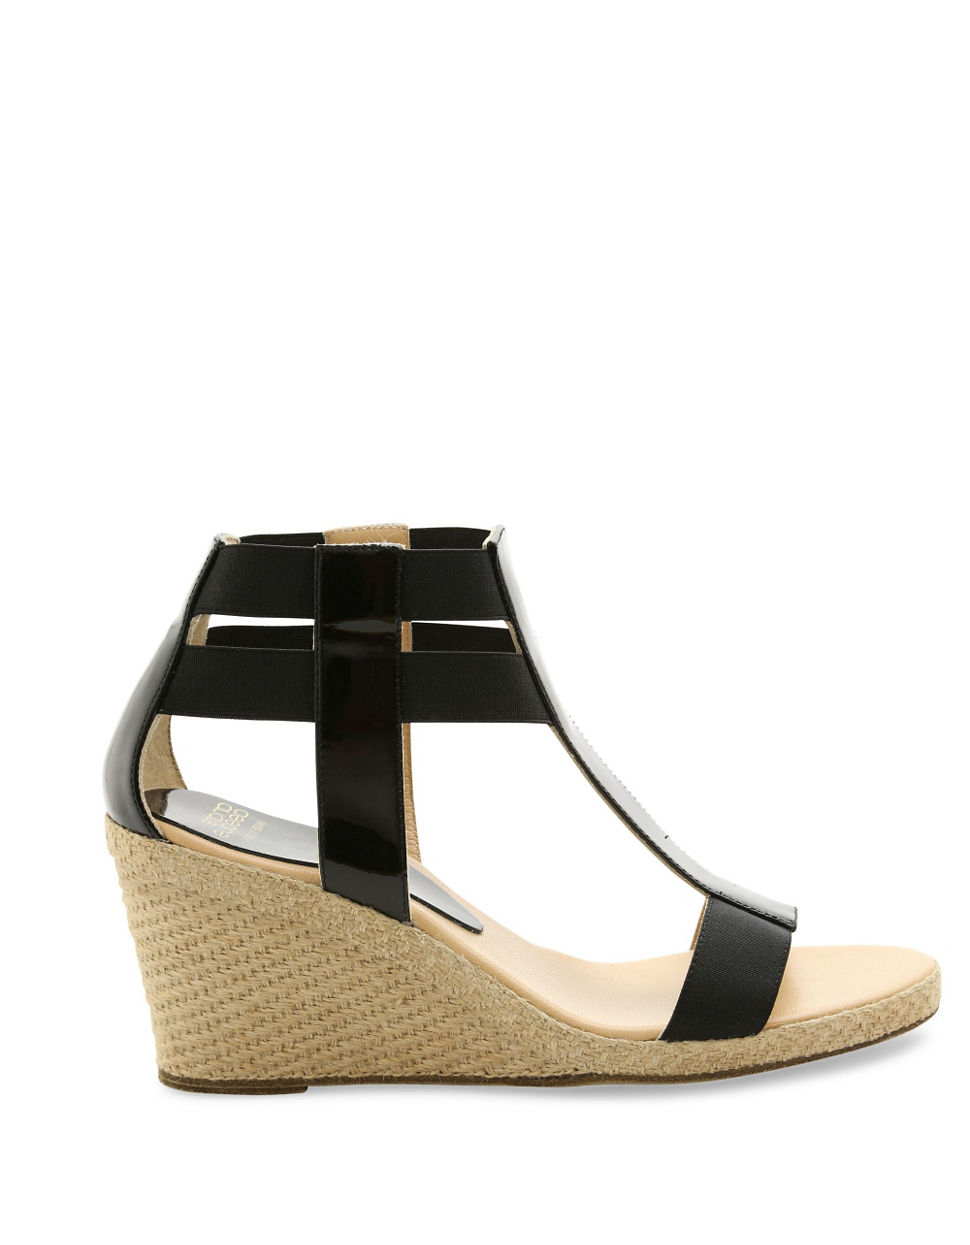 Andre assous Pippi Patent Leather Wedge Sandals in Black ...